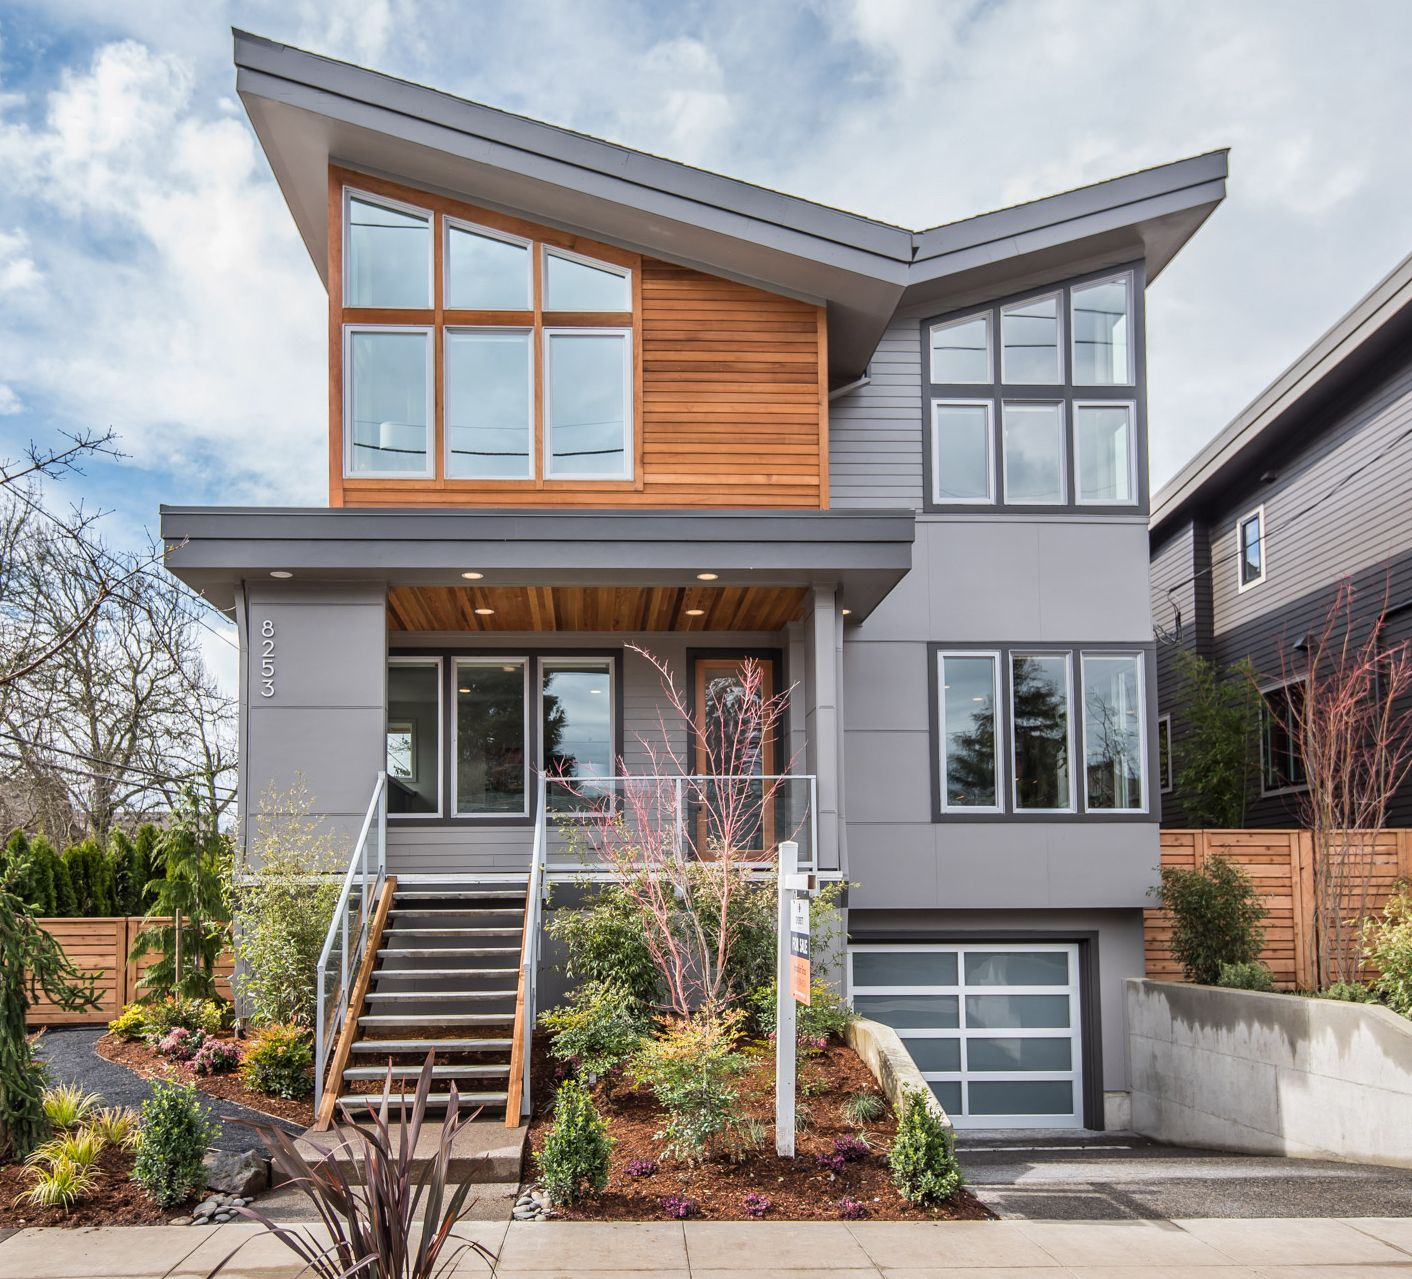 Meet The Butterfly Everett S Sleek New Modern Home Design Clean